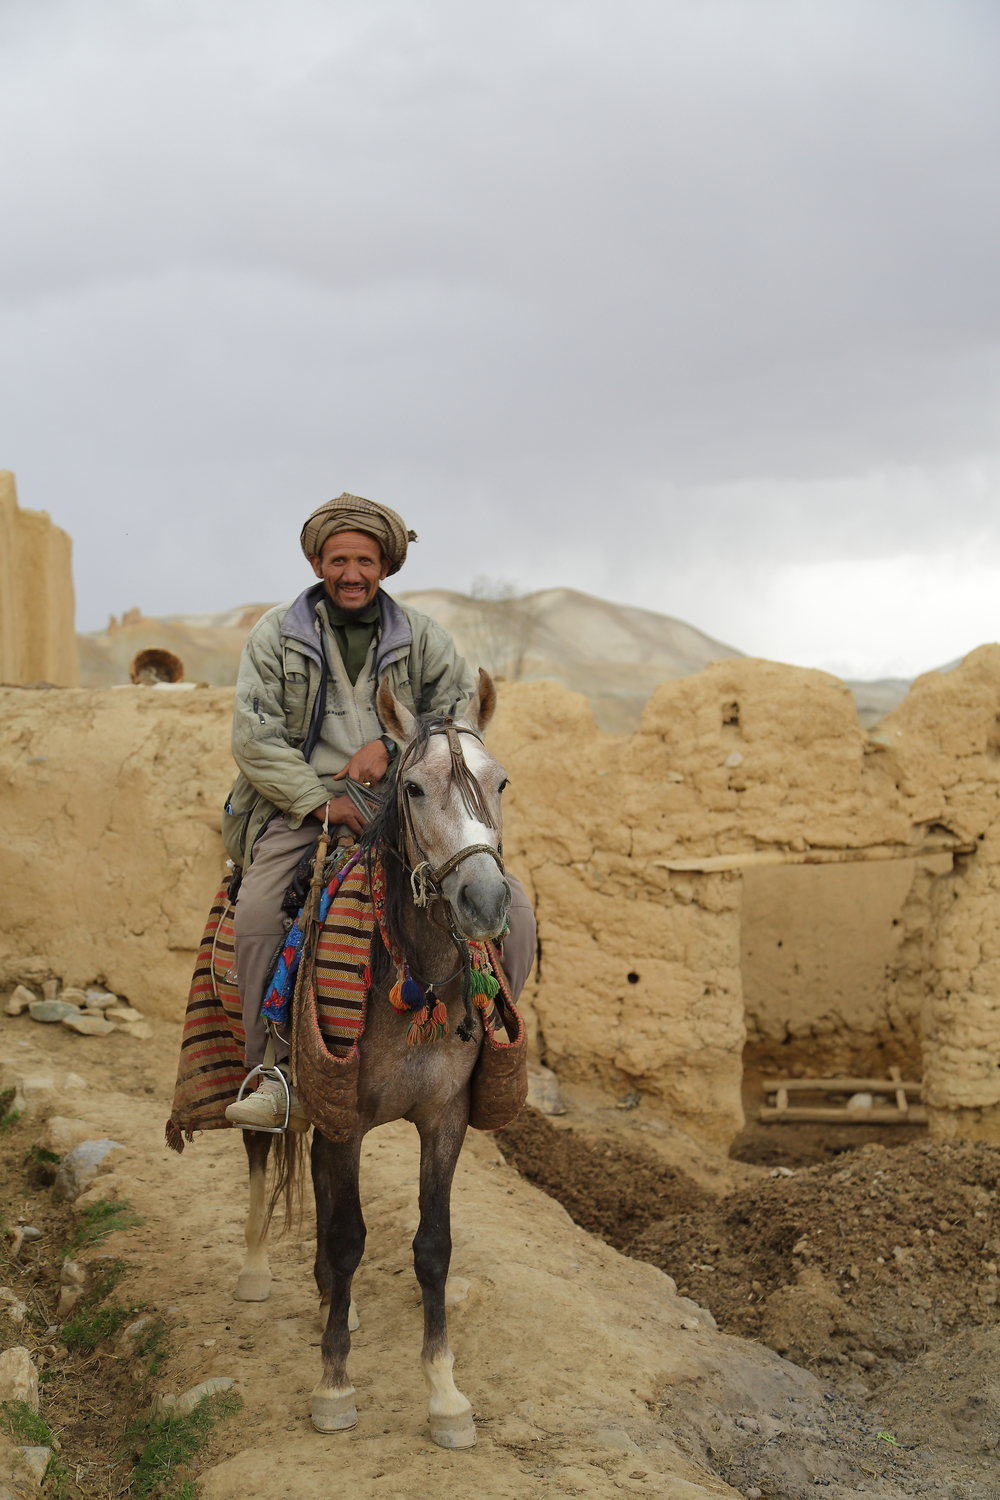 An Afghan man rides his horse through his village